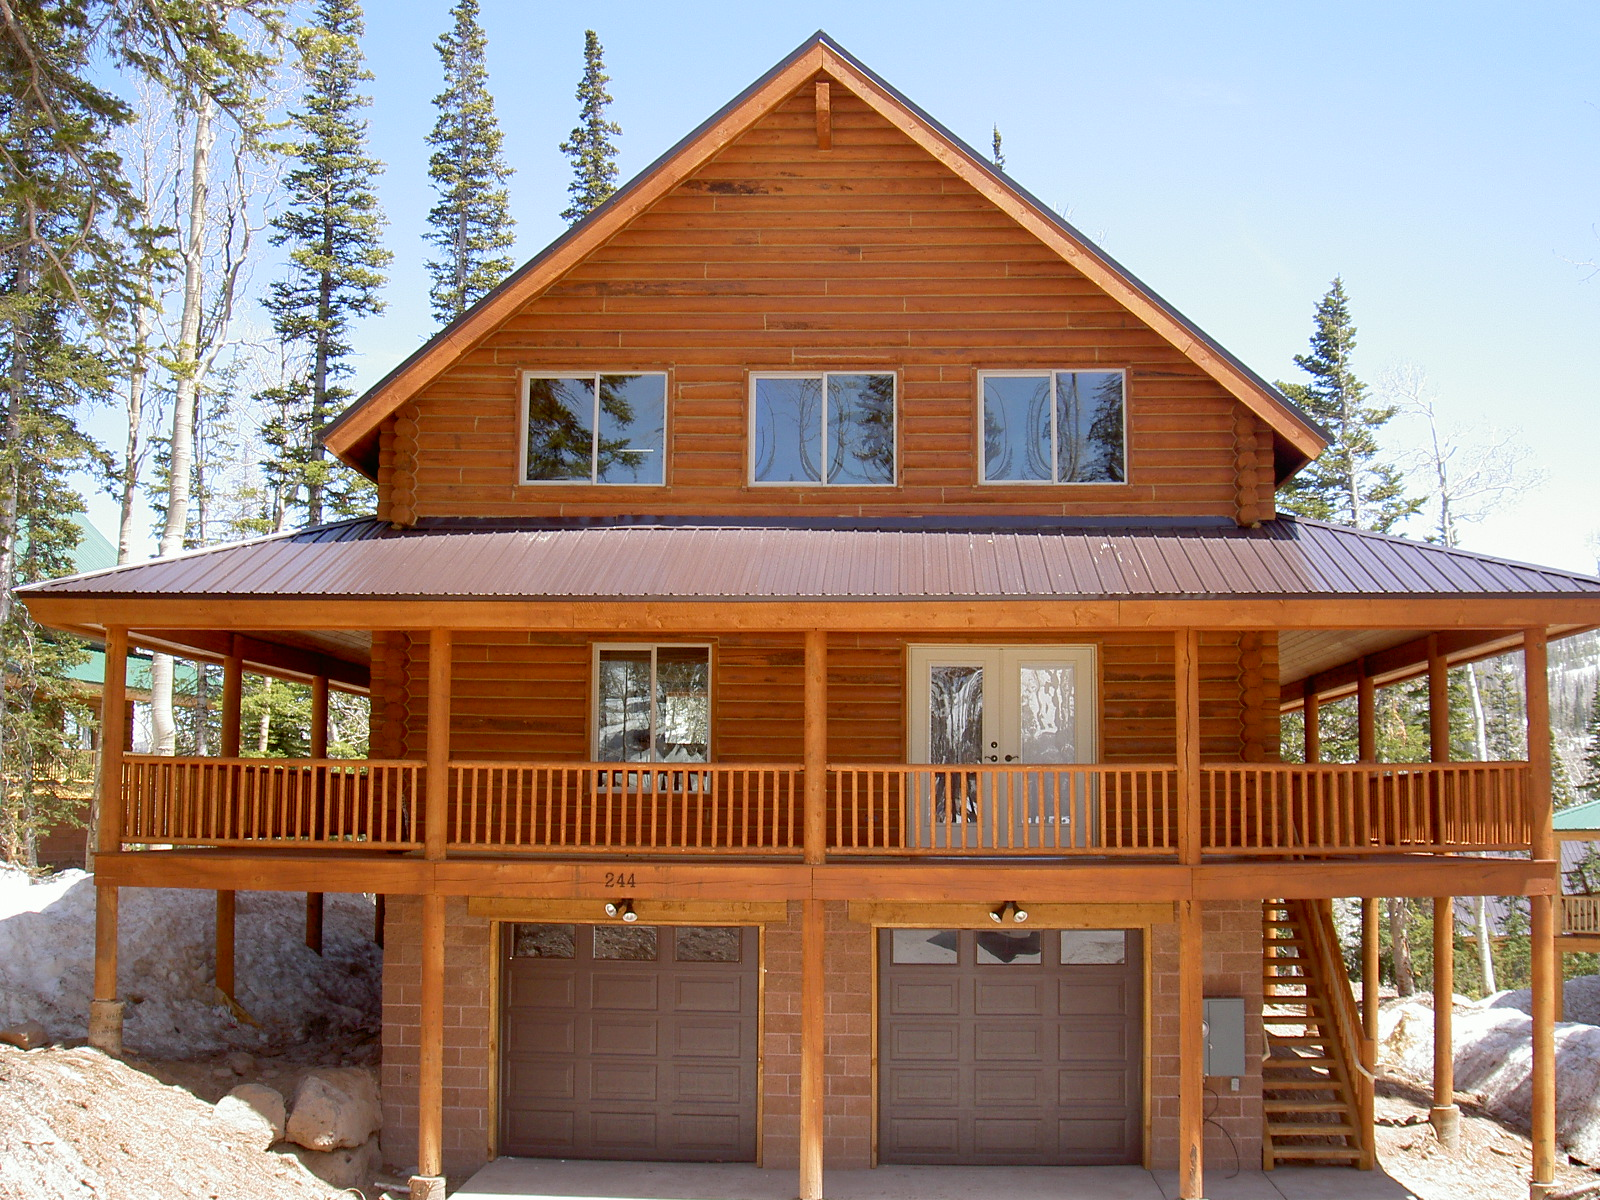 Brian head utah real estate log cabin for sale mls 31557 for Authentic log cabins for sale